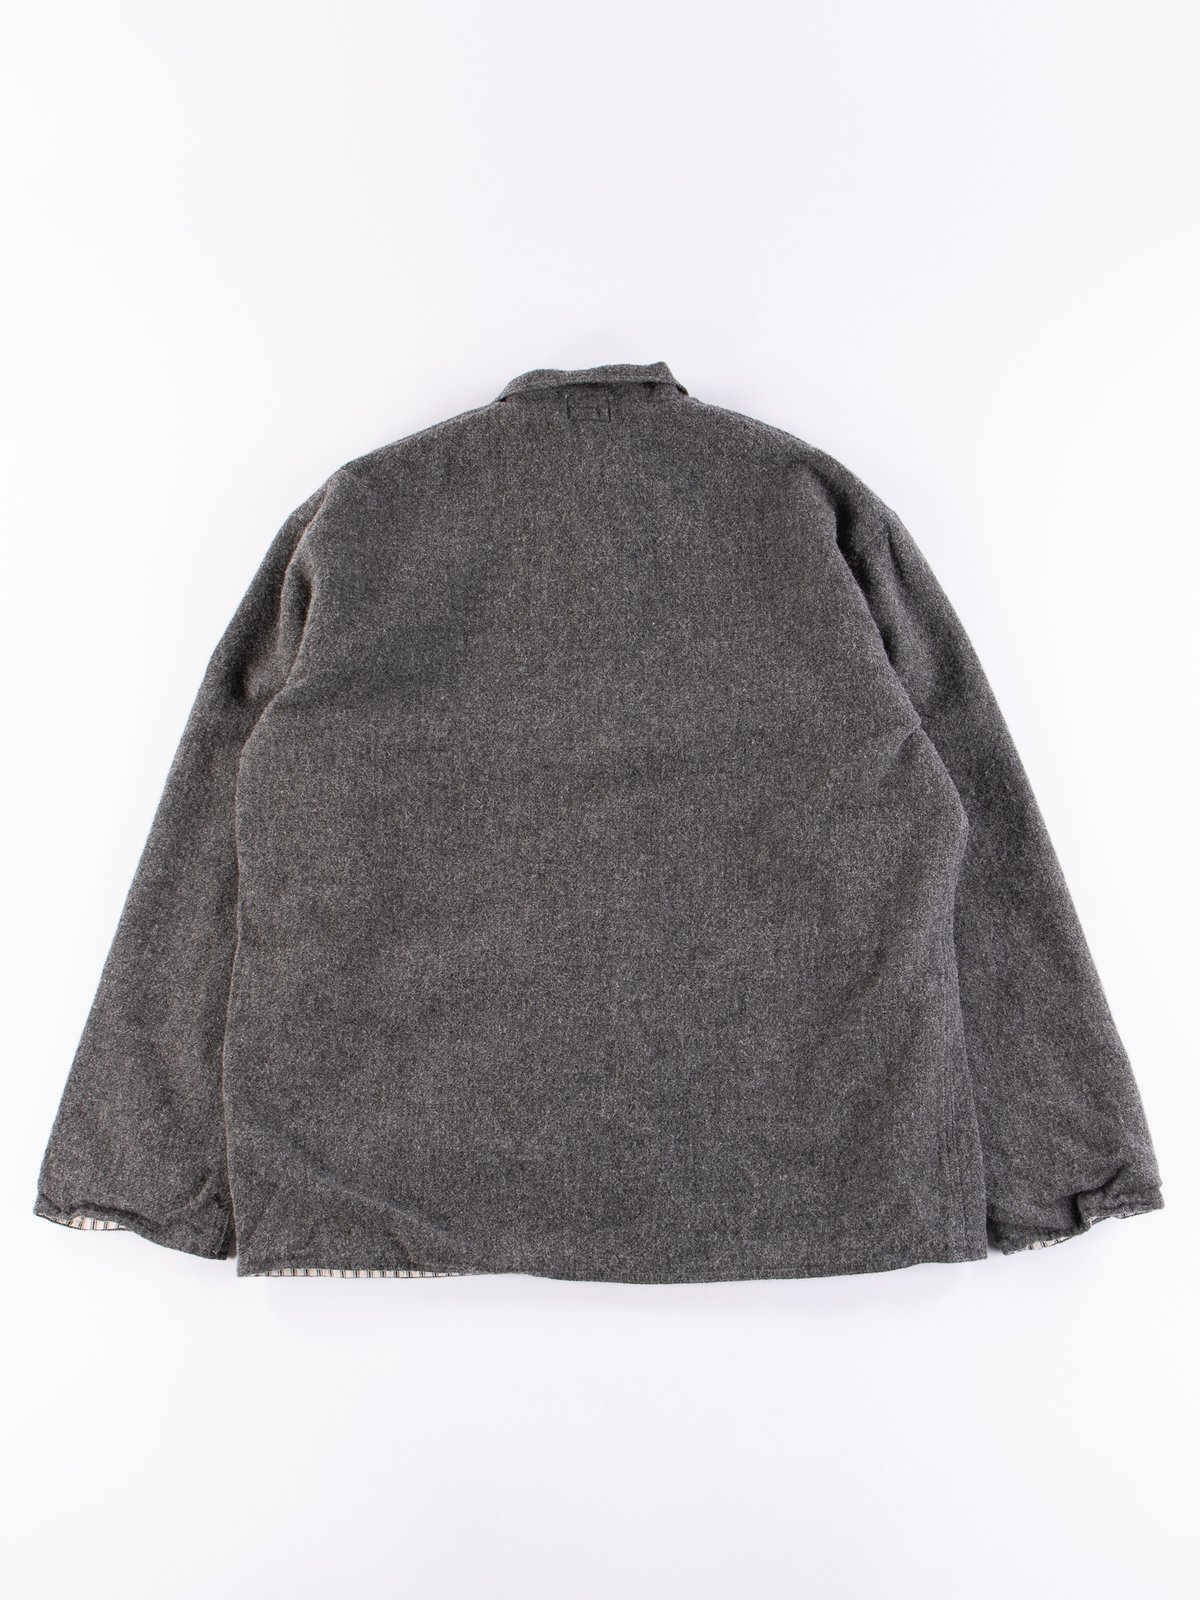 Charcoal Weavers Stock Curve Front Jacket - Image 6